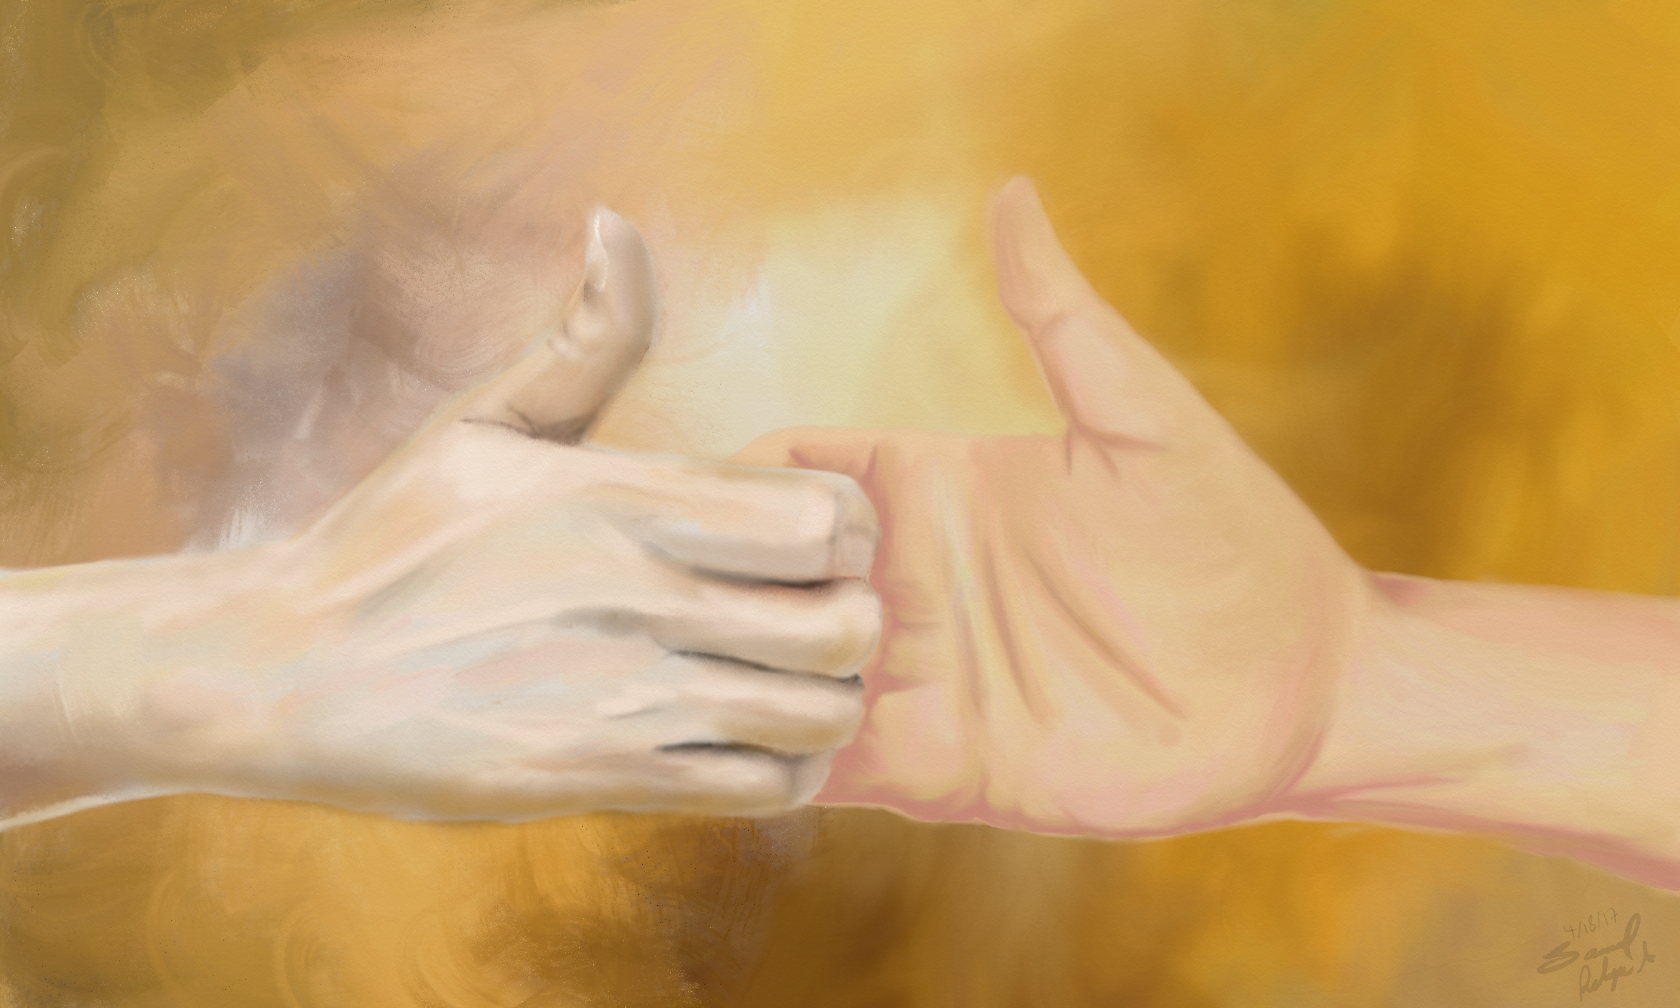 """Hand by hand""- Jazza's challenge of the month (Tradigital) entry"